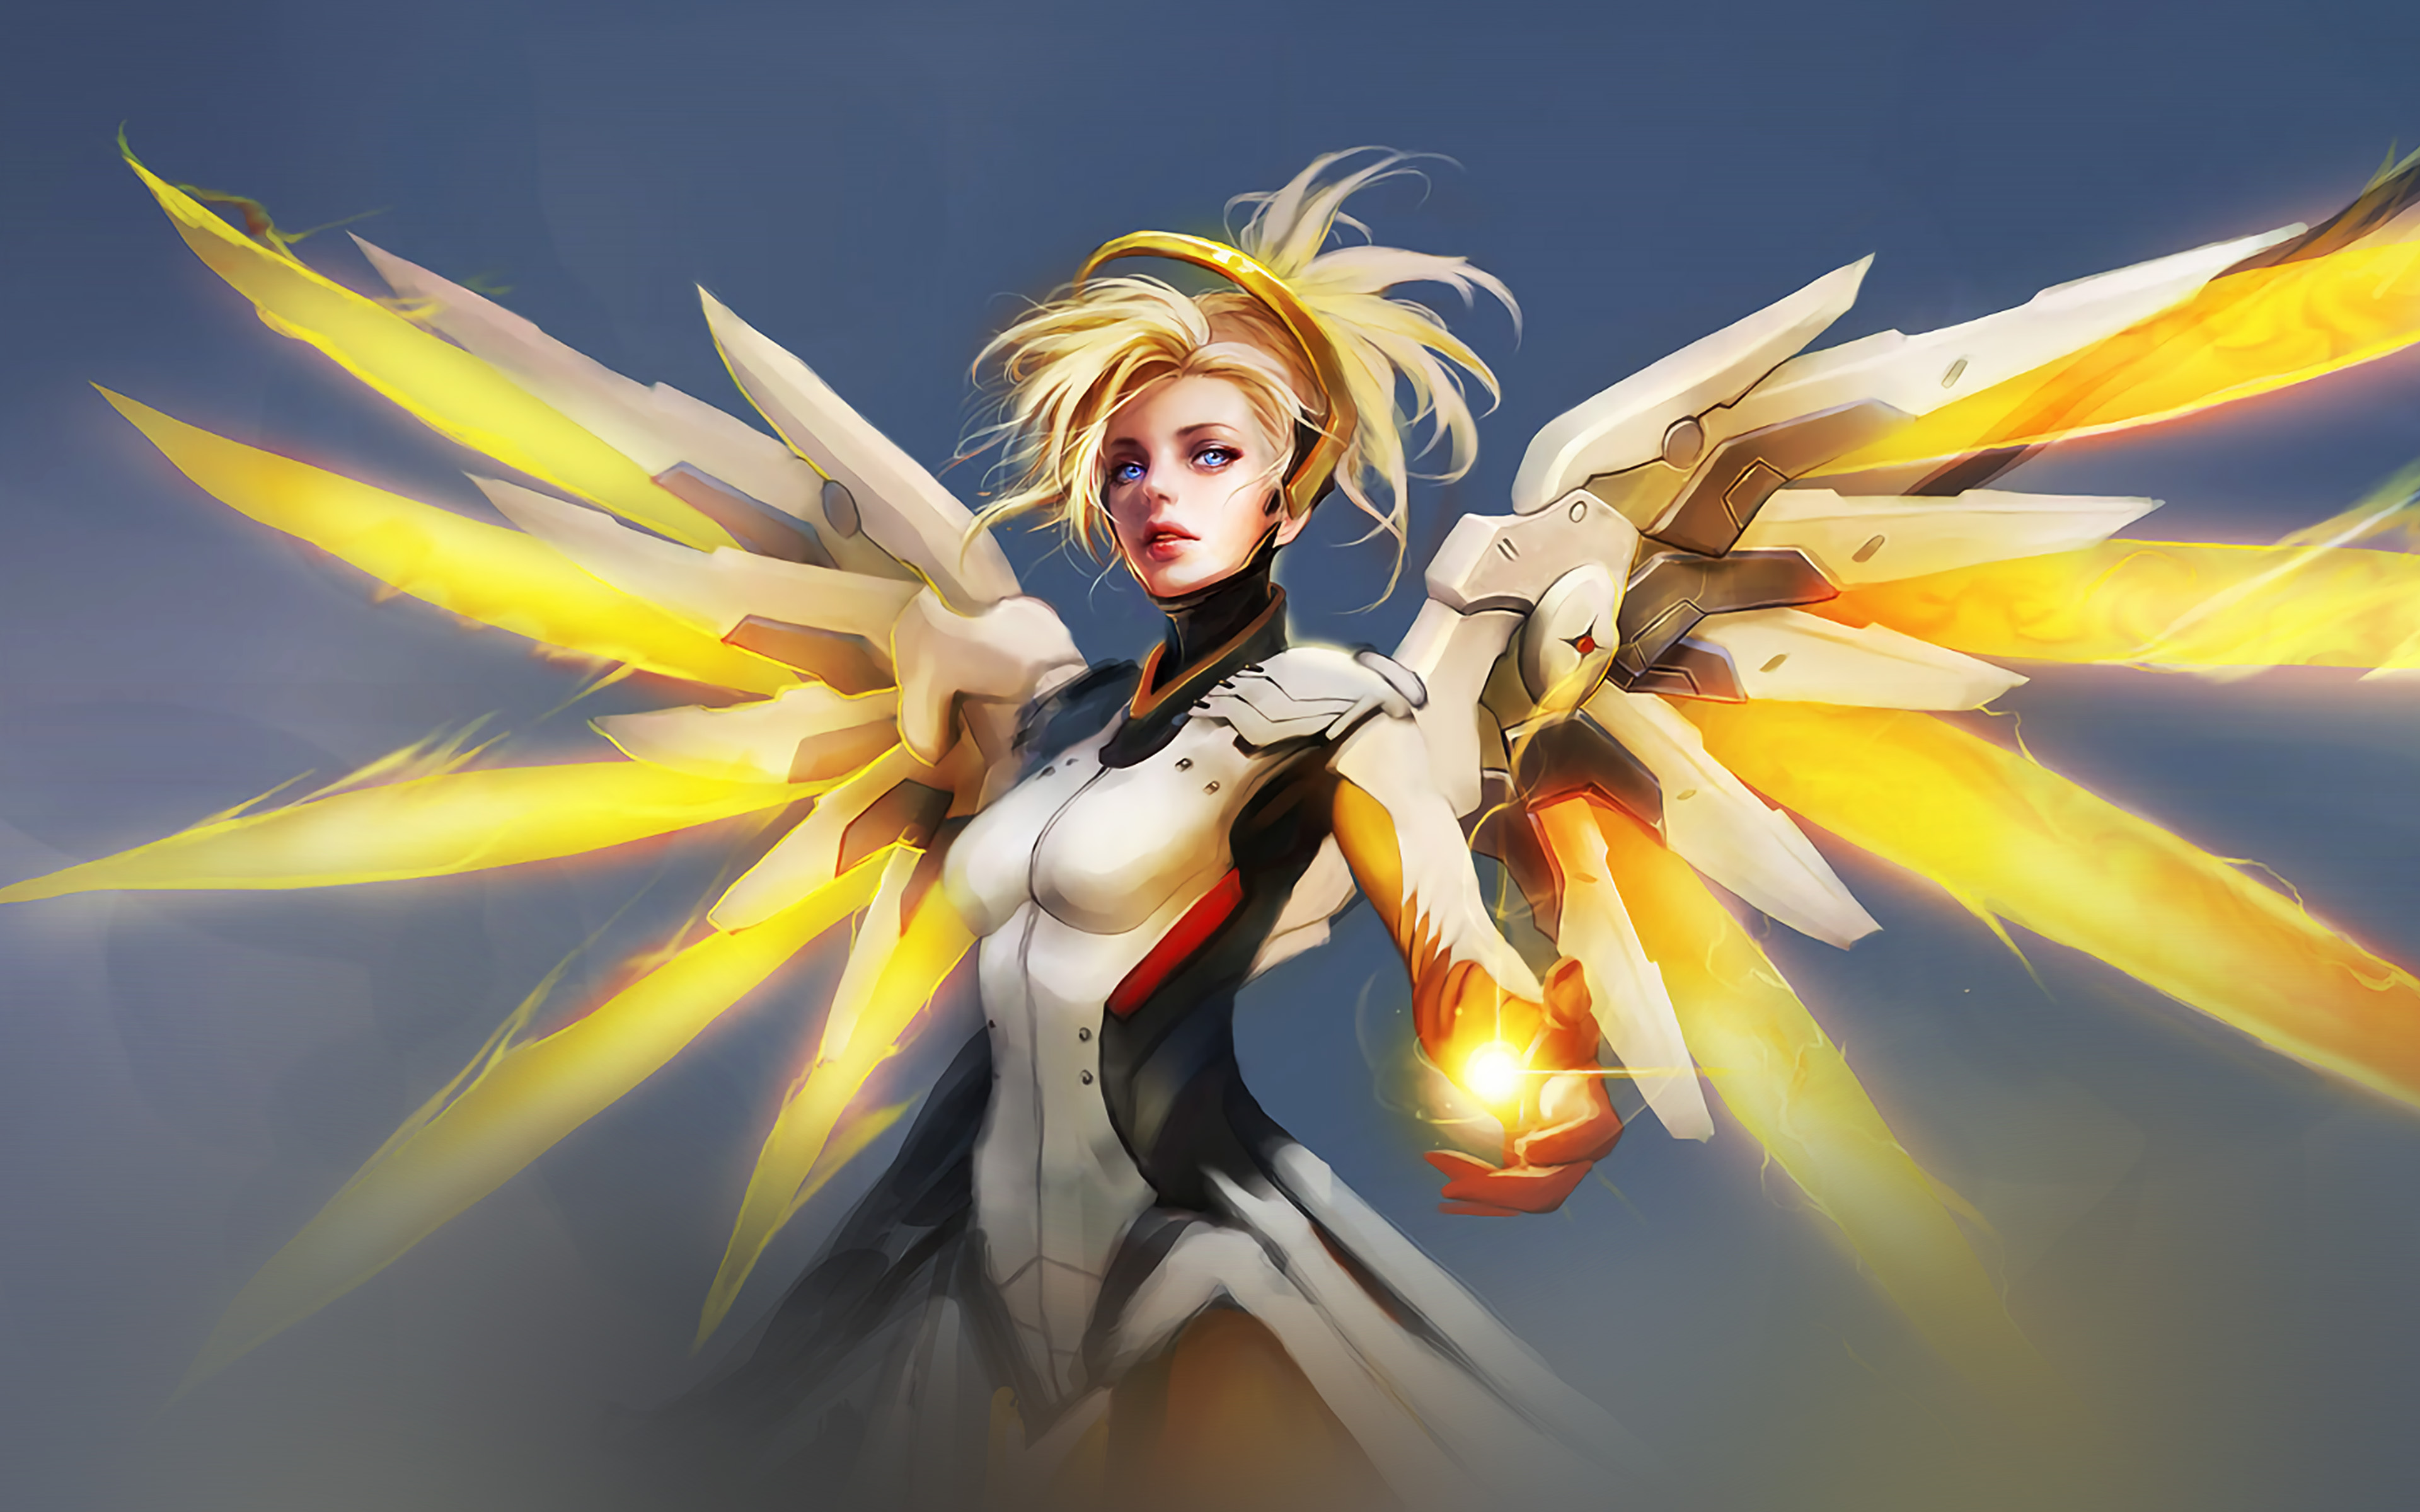 as01-overwatch-mercy-cute-game-art-illustration-angel-wallpaper